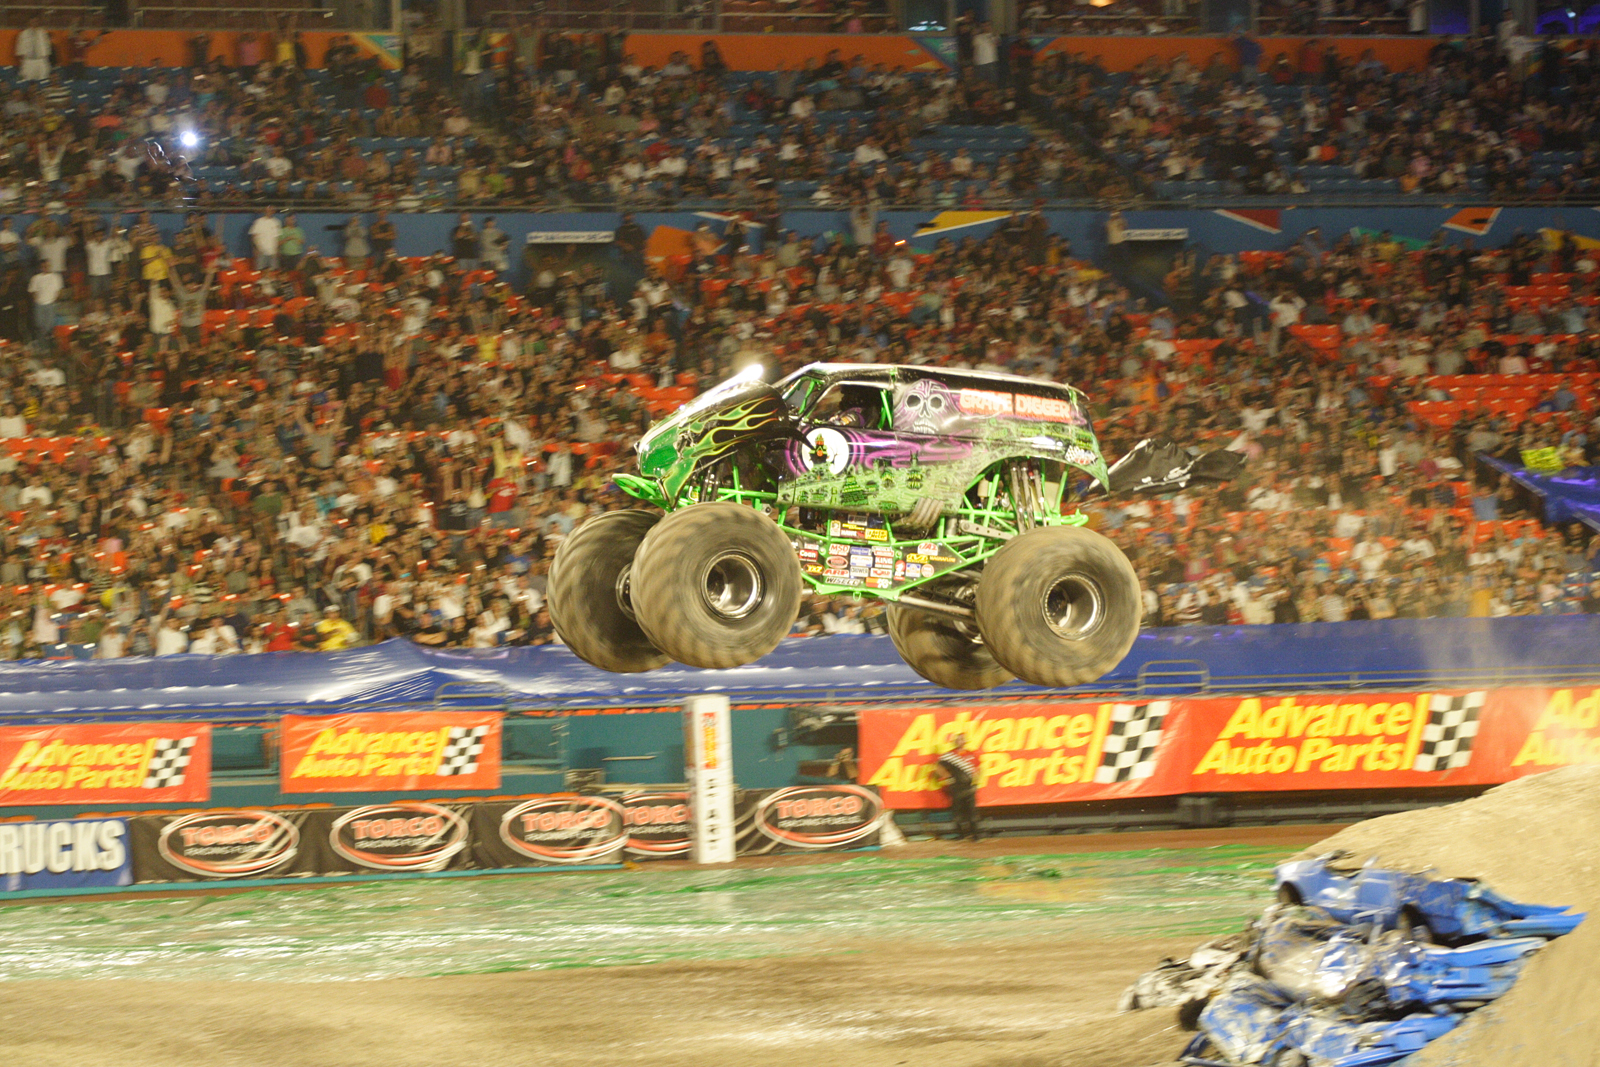 monstertrucks_wallpaper_023_1600_1067.jpg